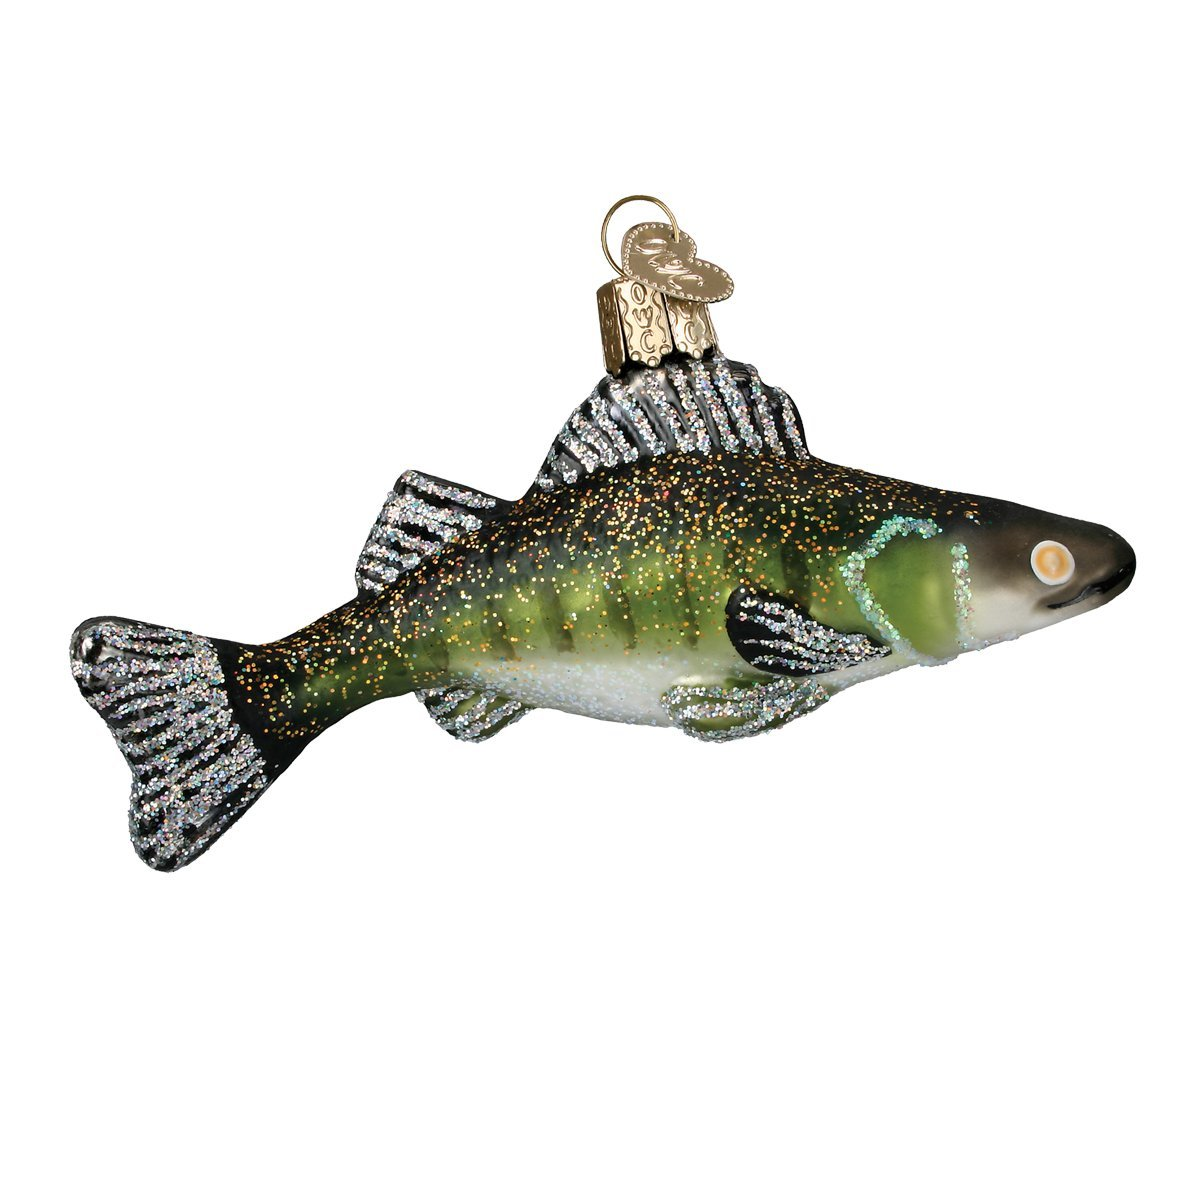 Old World Christmas Ornaments: Walleye Glass Blown Ornaments for Christmas Tree